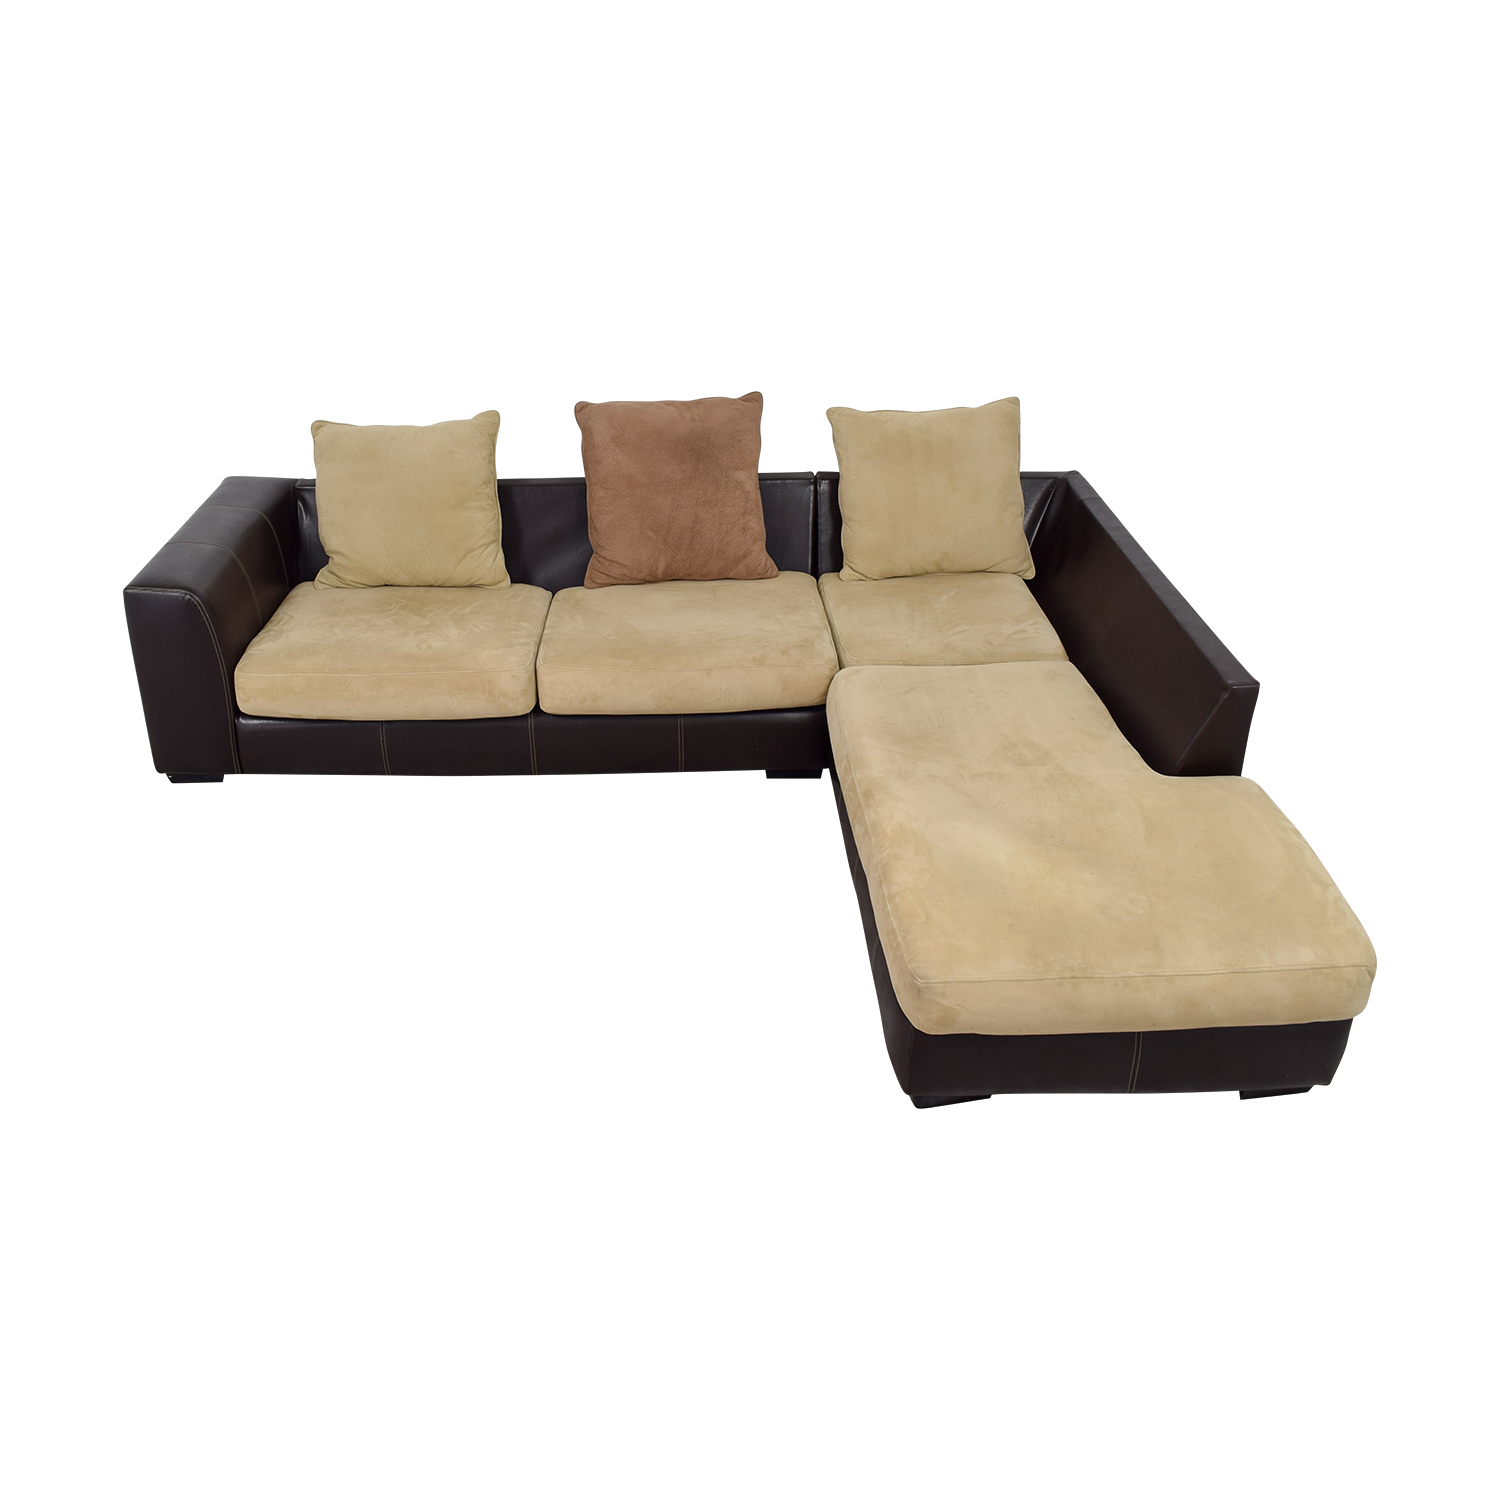 74% OFF - L-Shaped Brown Leather and Tan Fabric Sectional / Sofas